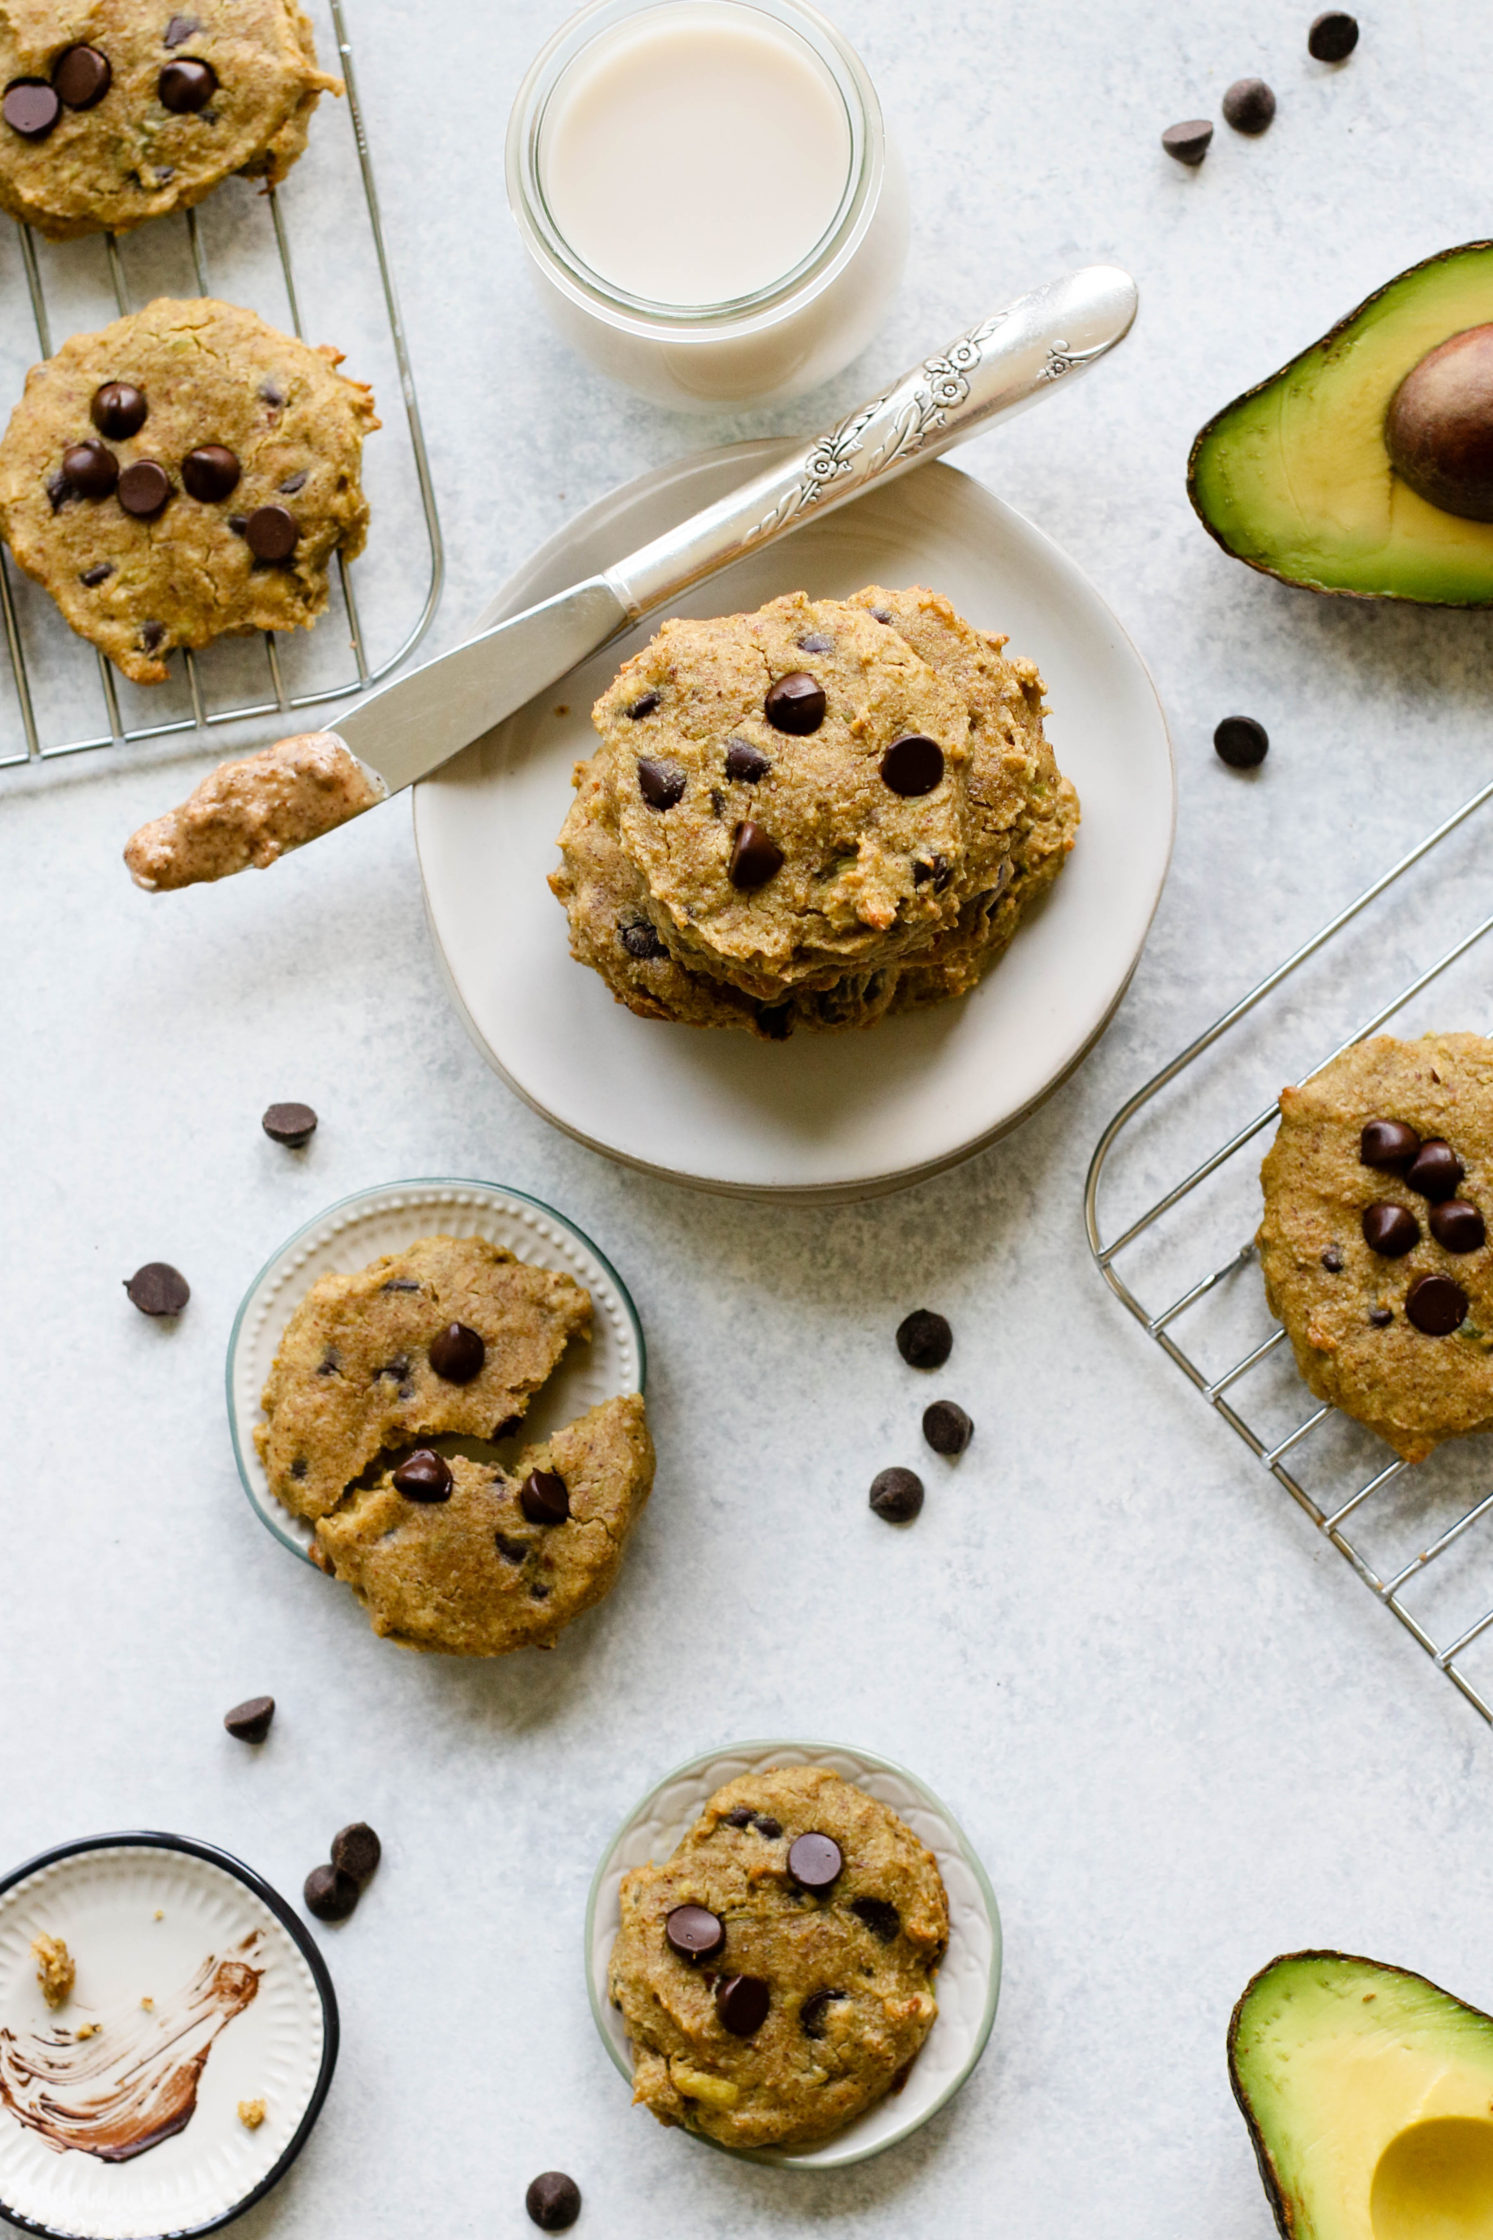 Almond Butter Avocado Chocolate Chip Cookies